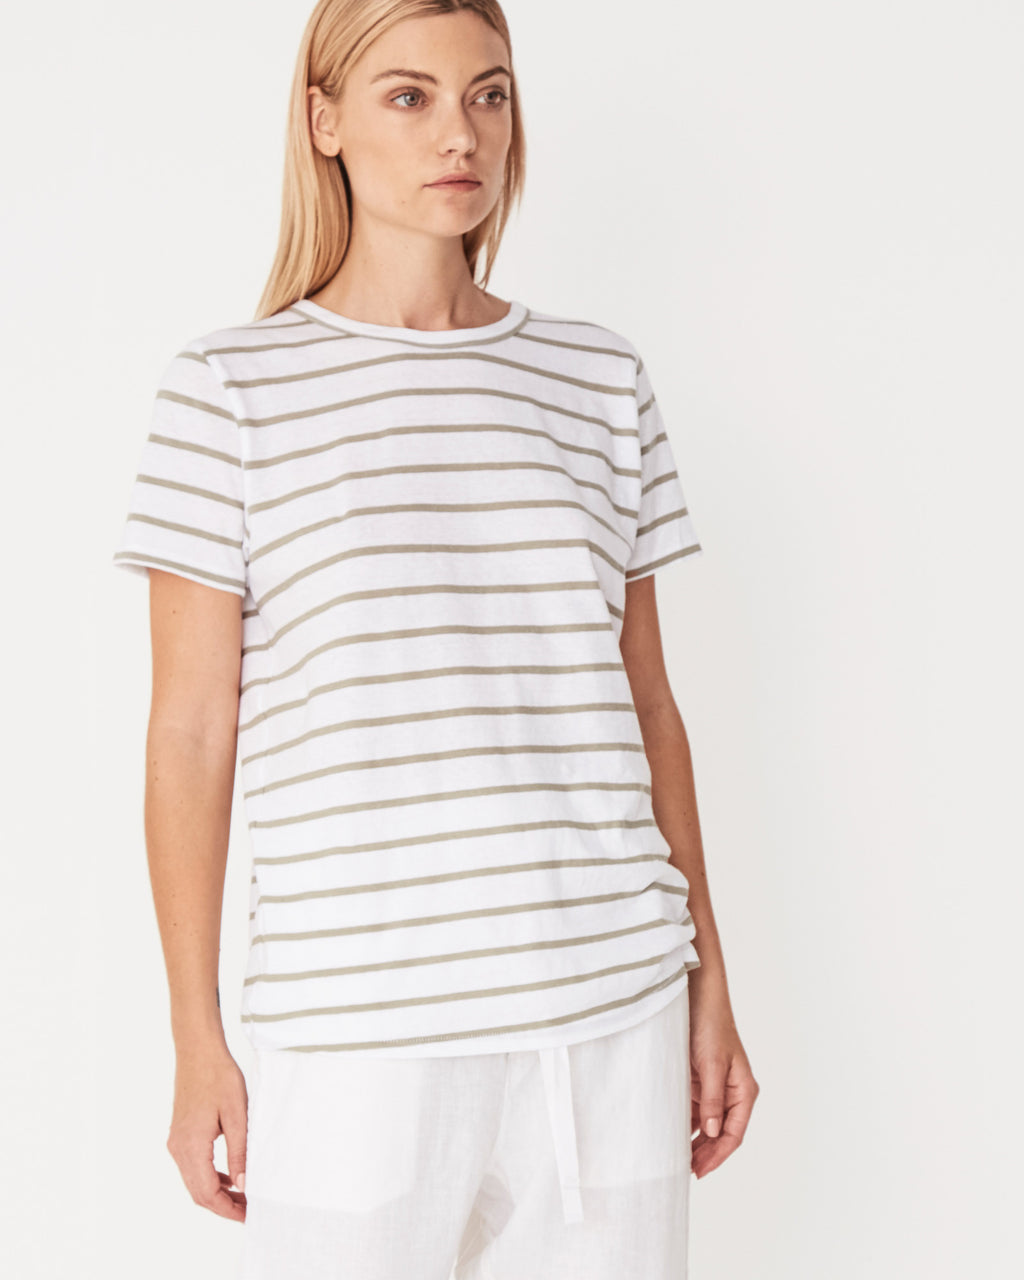 Assembly Label Everyday Tee - Sage Stripe